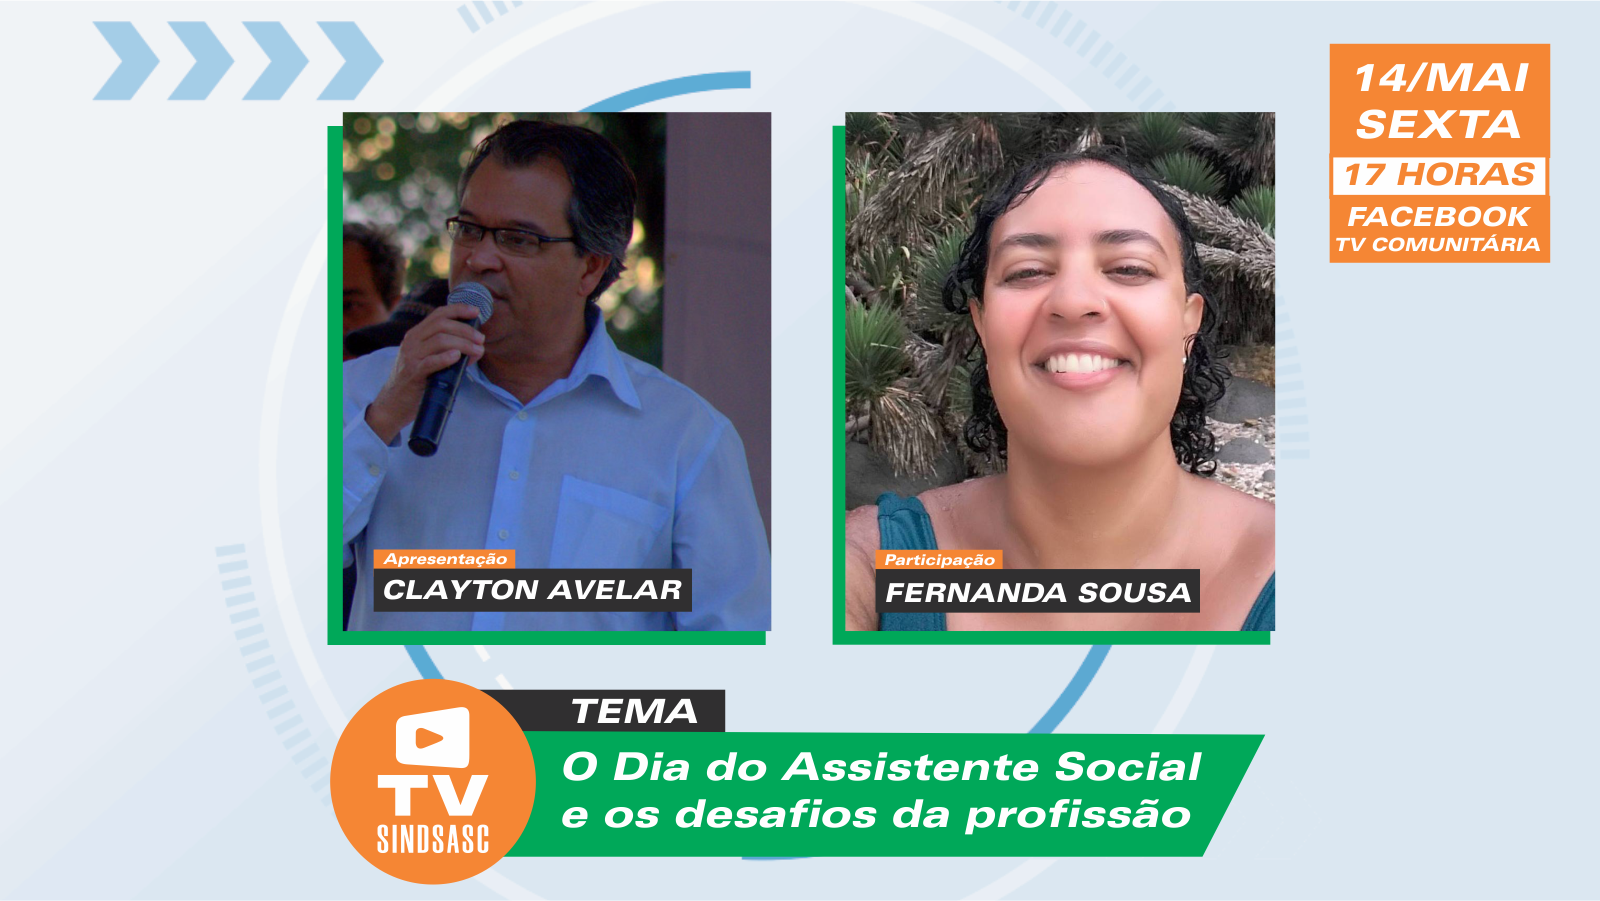 Dia do Assistente Social é tema do TV Sindsasc